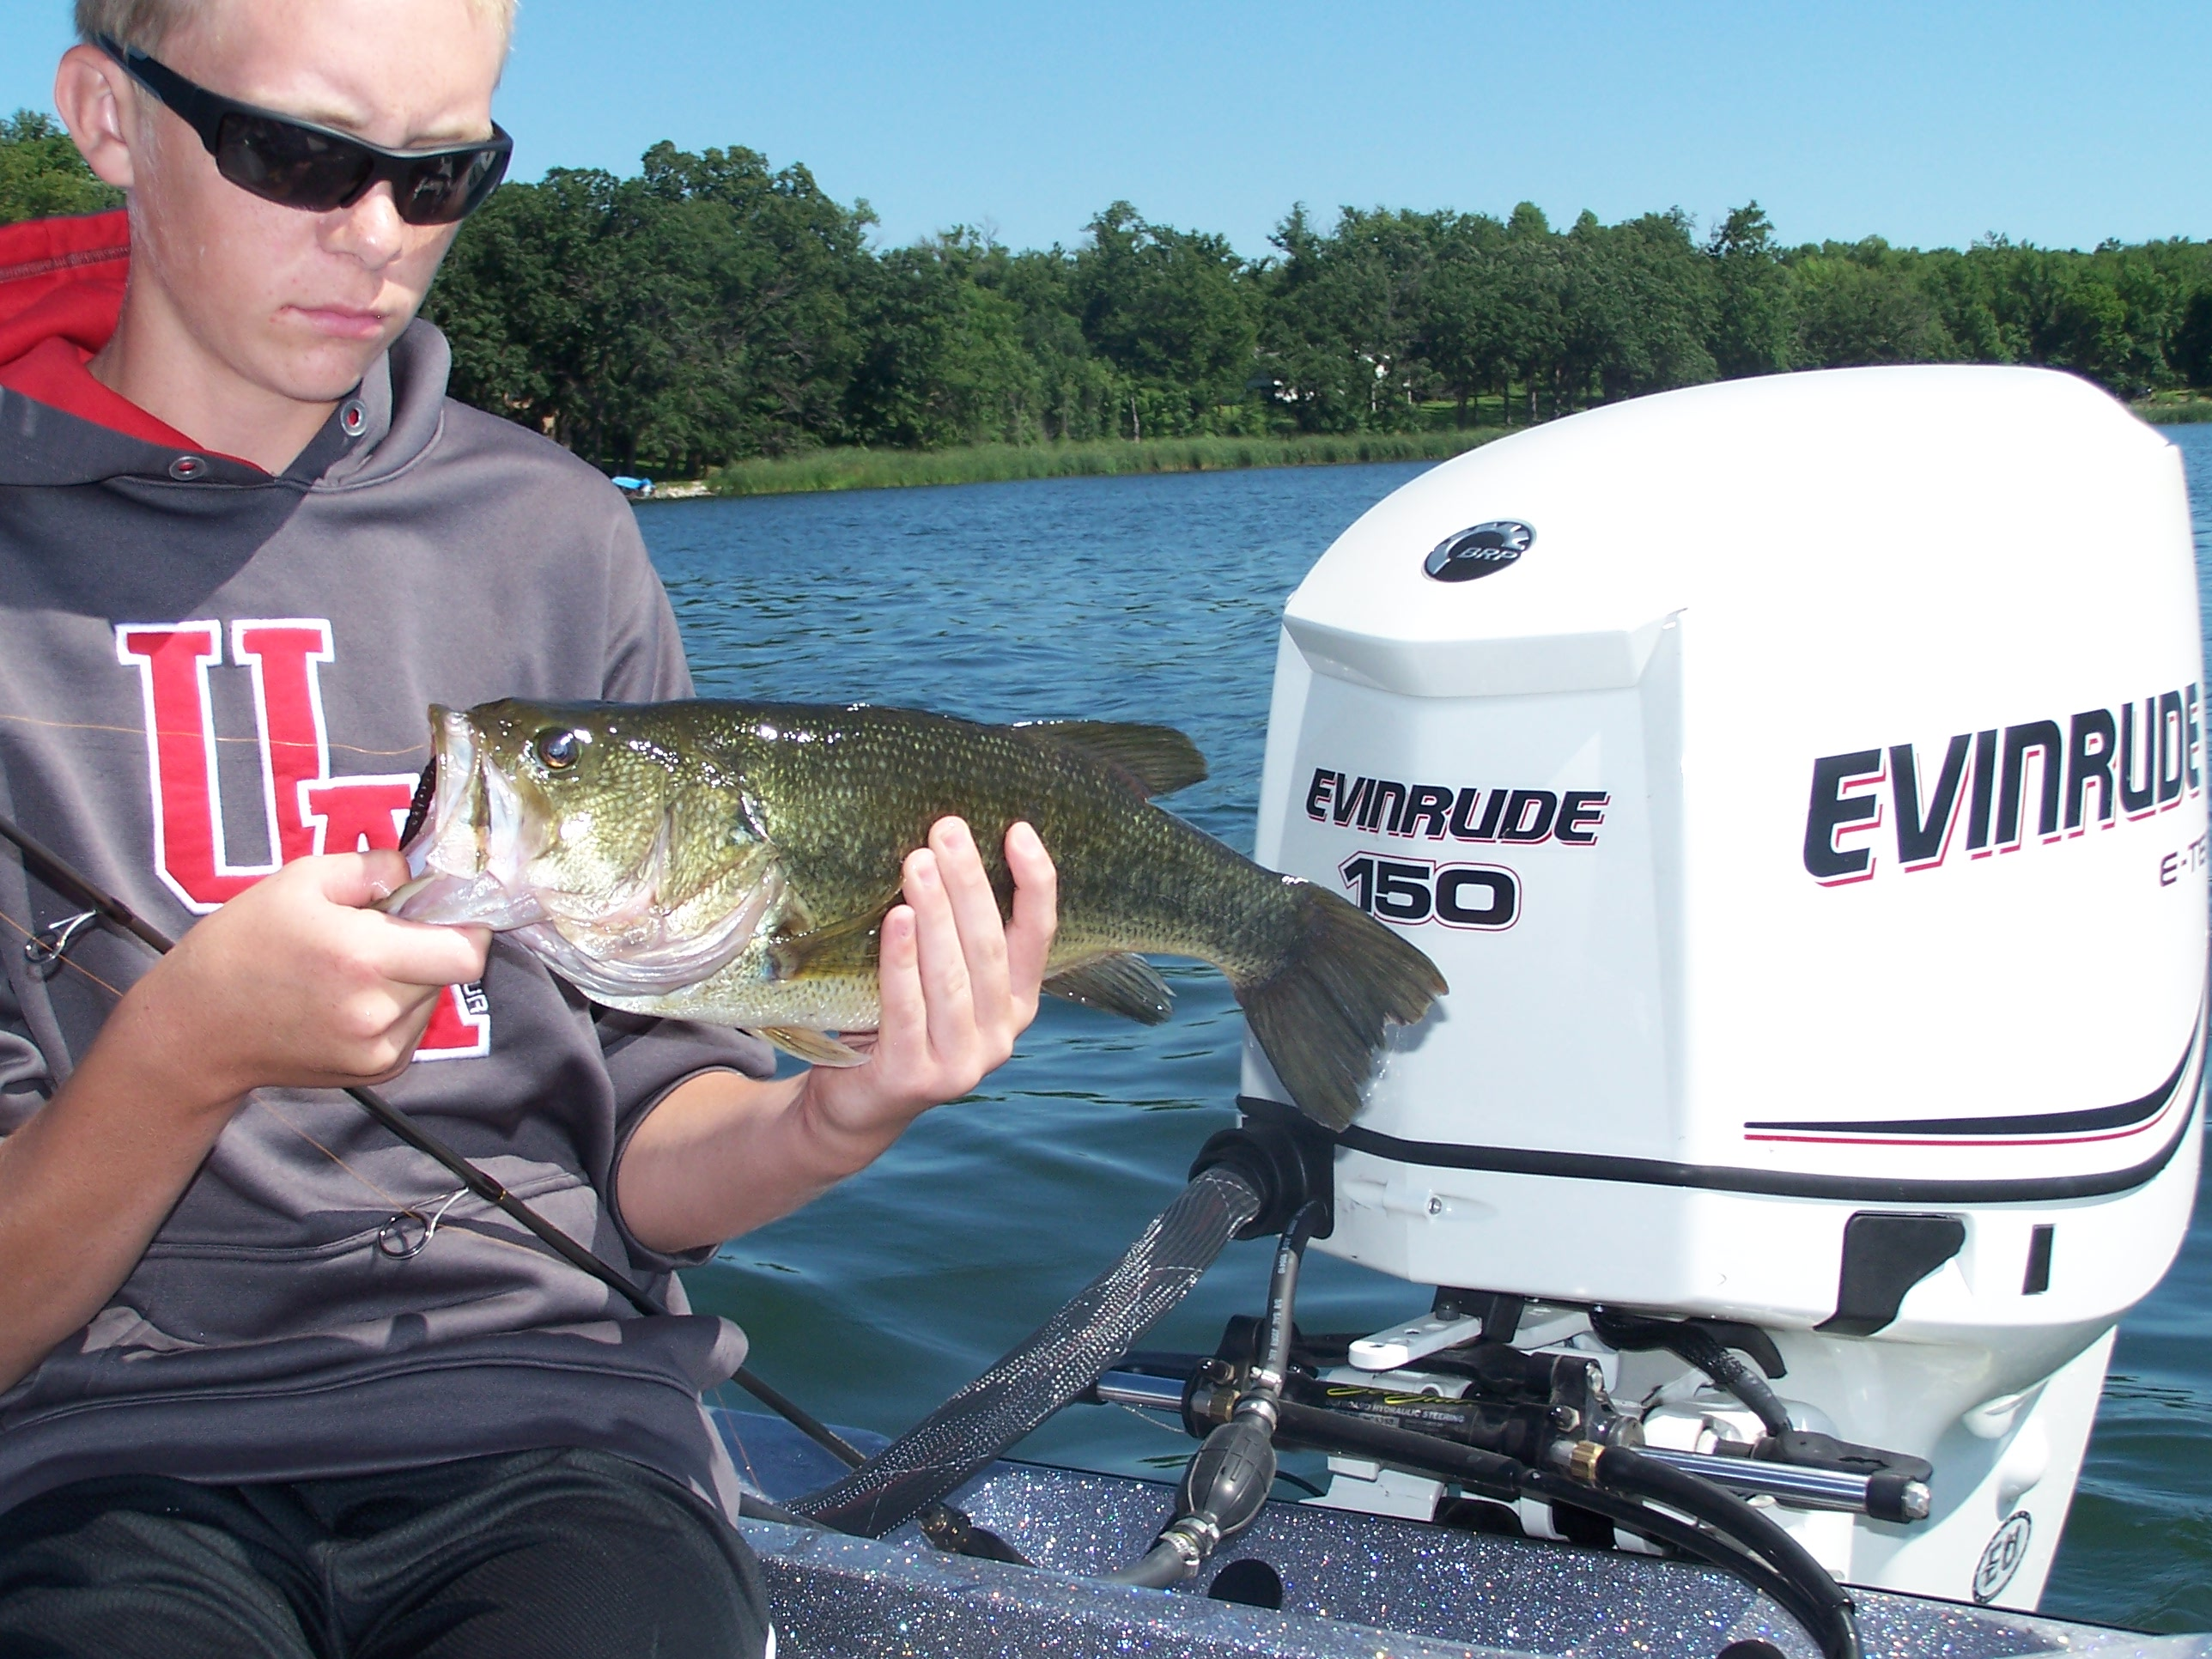 Fish plastic baits properly and your catches will go up big-time.